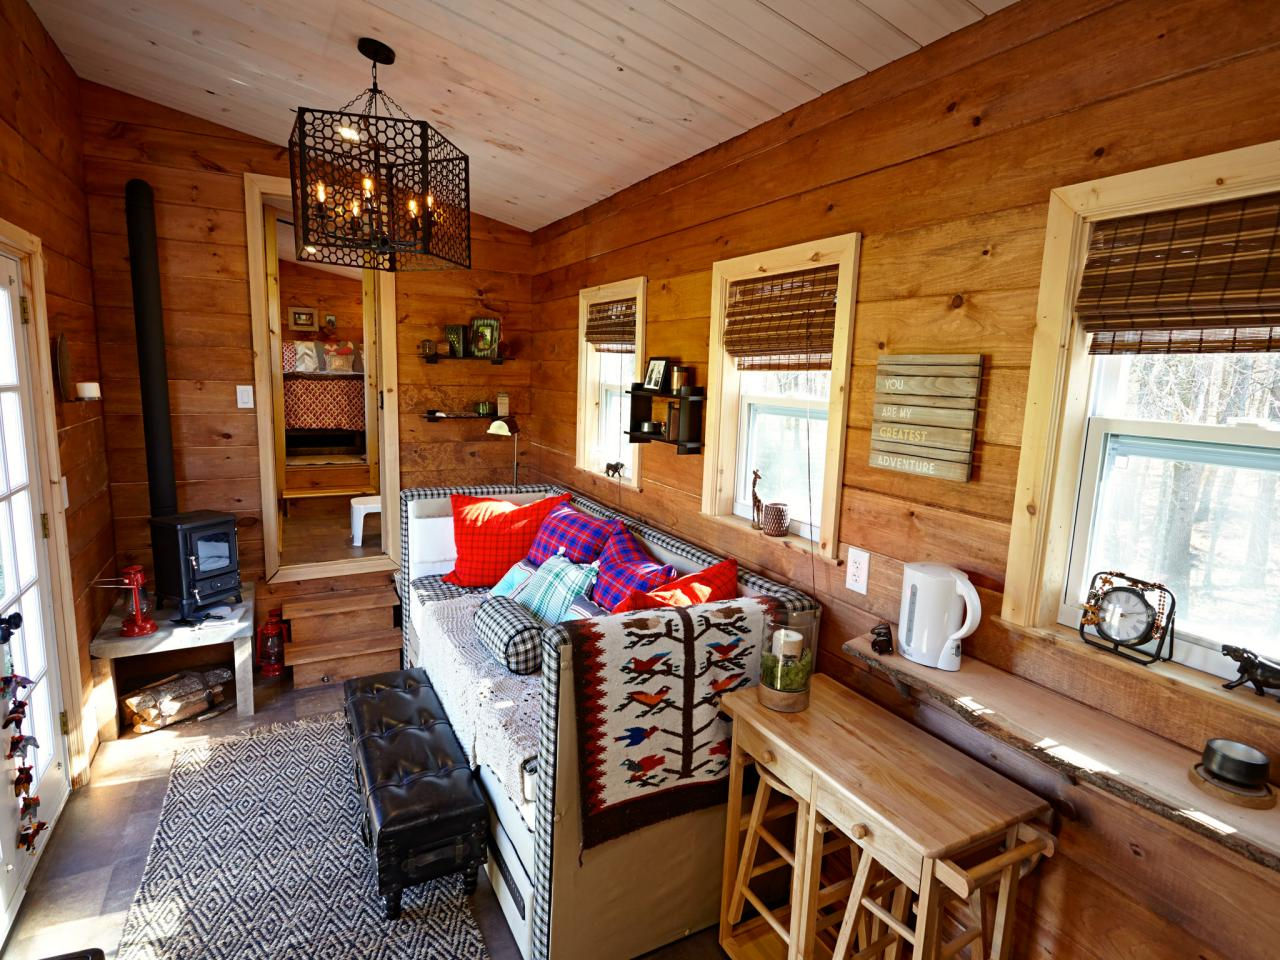 Swell 6 Smart Storage Ideas From Tiny House Dwellers Hgtv Largest Home Design Picture Inspirations Pitcheantrous